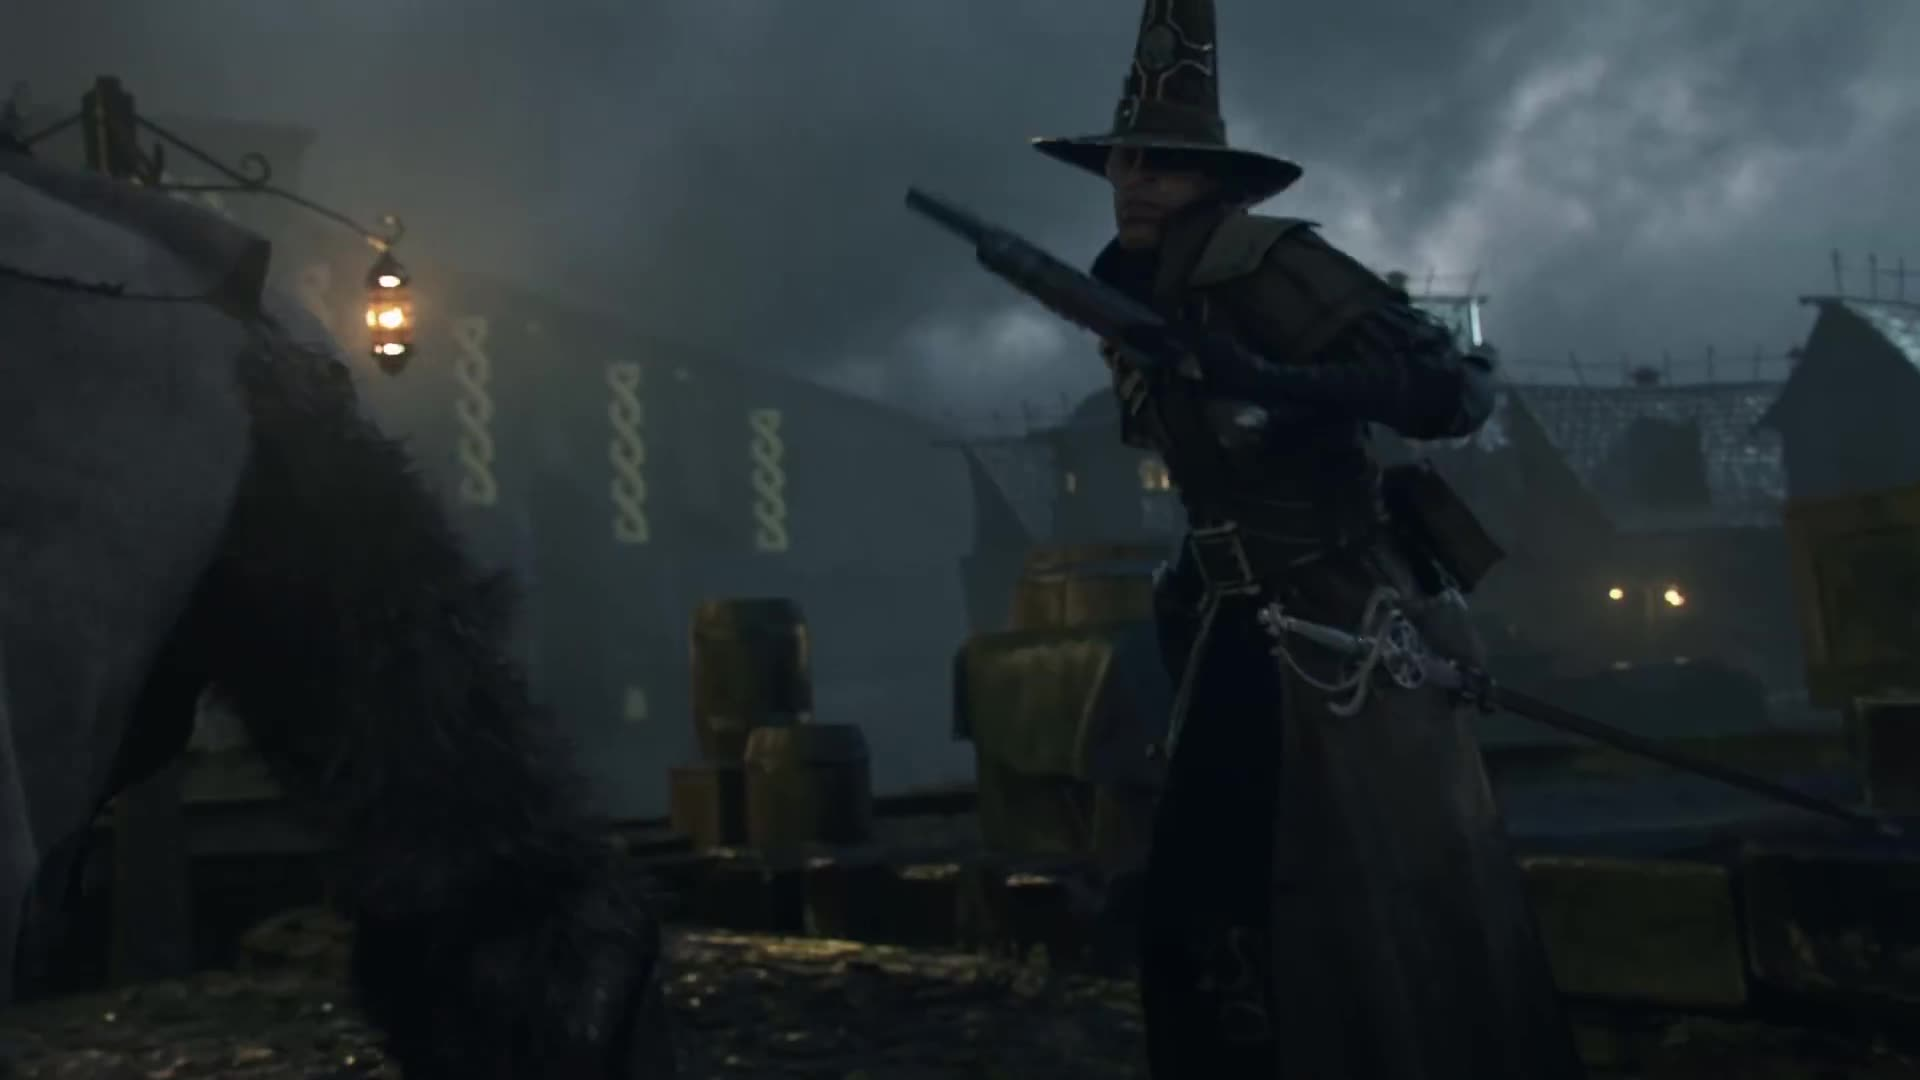 Cinematic, Fatshark, Gaming, Vermintide, Warhammer: End Times - Vermintide, action, end times, trailer, video game, warhammer, Warhammer: End Times - Vermintide Cinematic Release Trailer GIFs